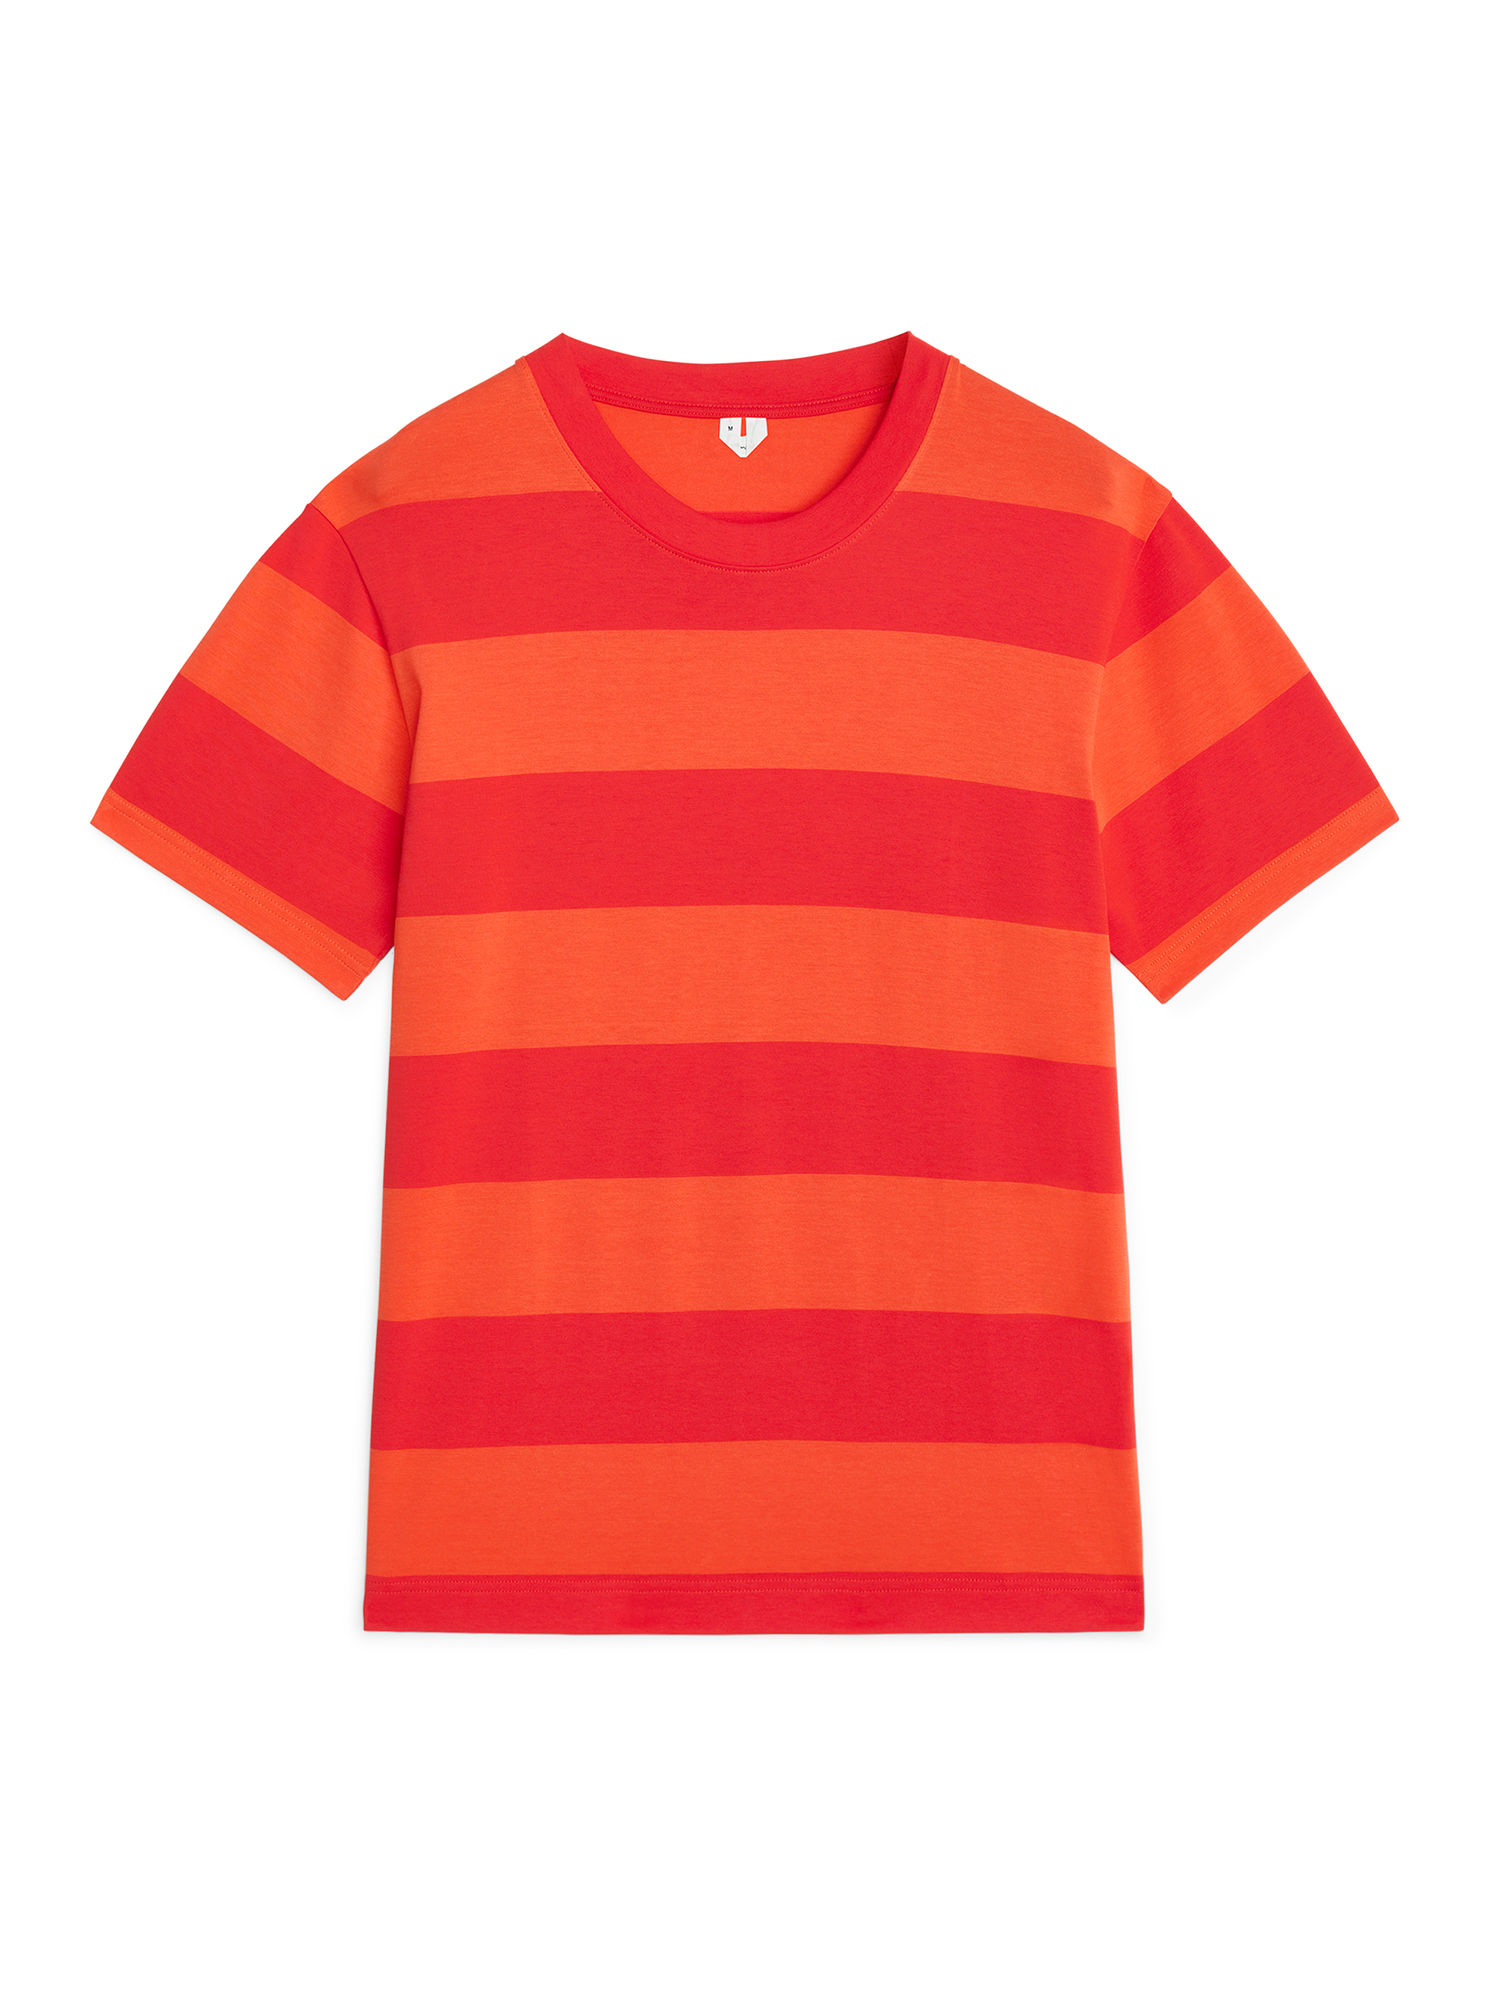 Fabric Swatch image of Arket block stripe cotton t-shirt in orange